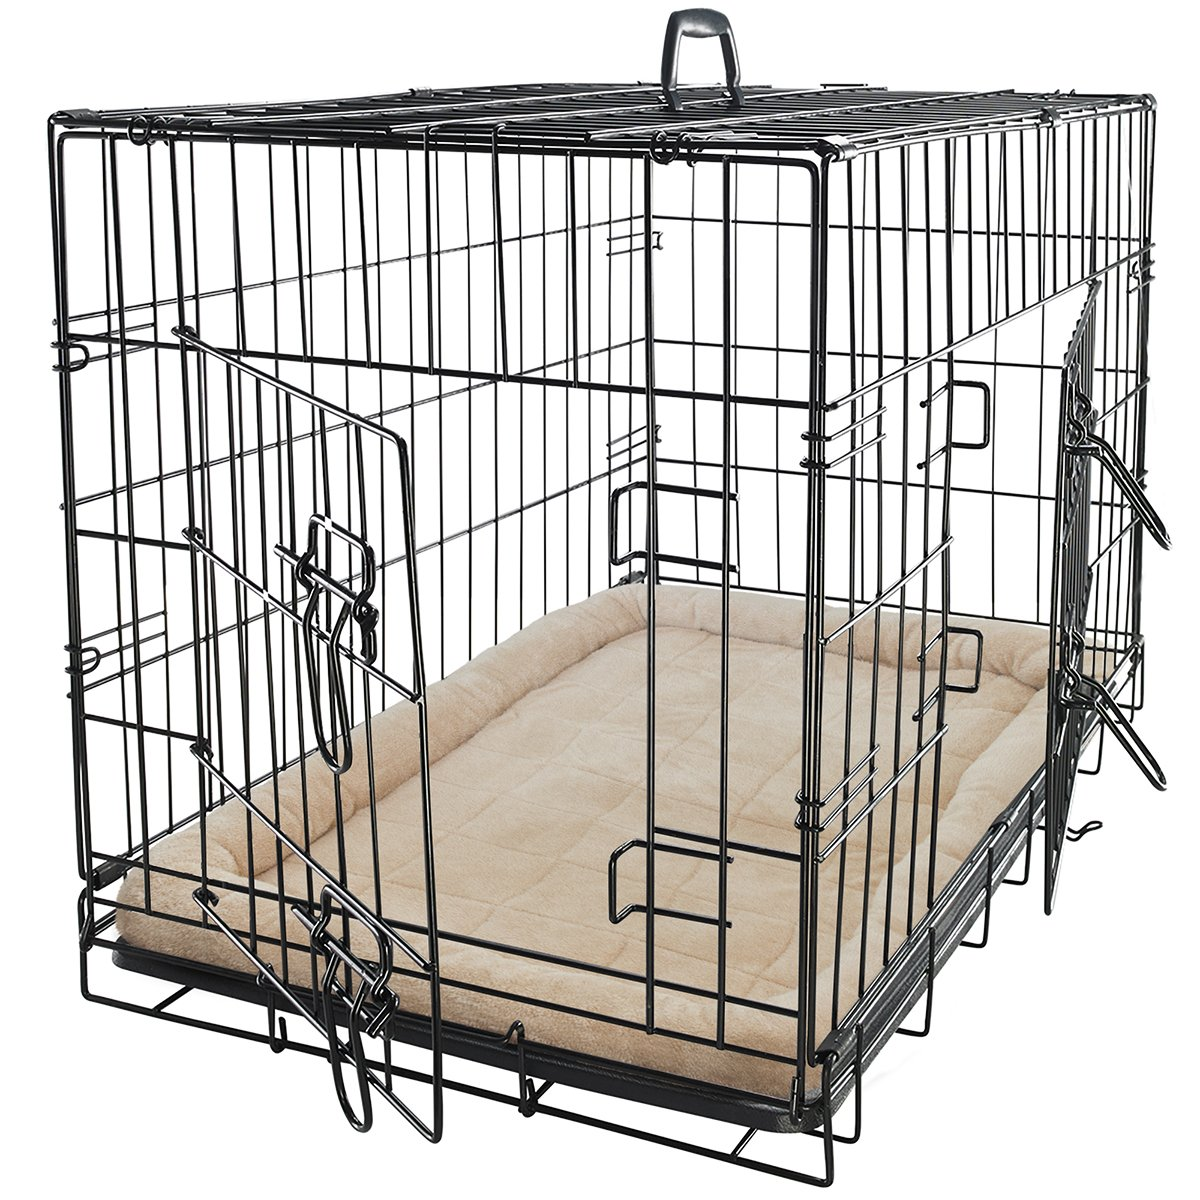 Pet Dog Cat Crate Kennel Cage and Bed Pad Cushion Warm Soft Cozy House Kit Playpen